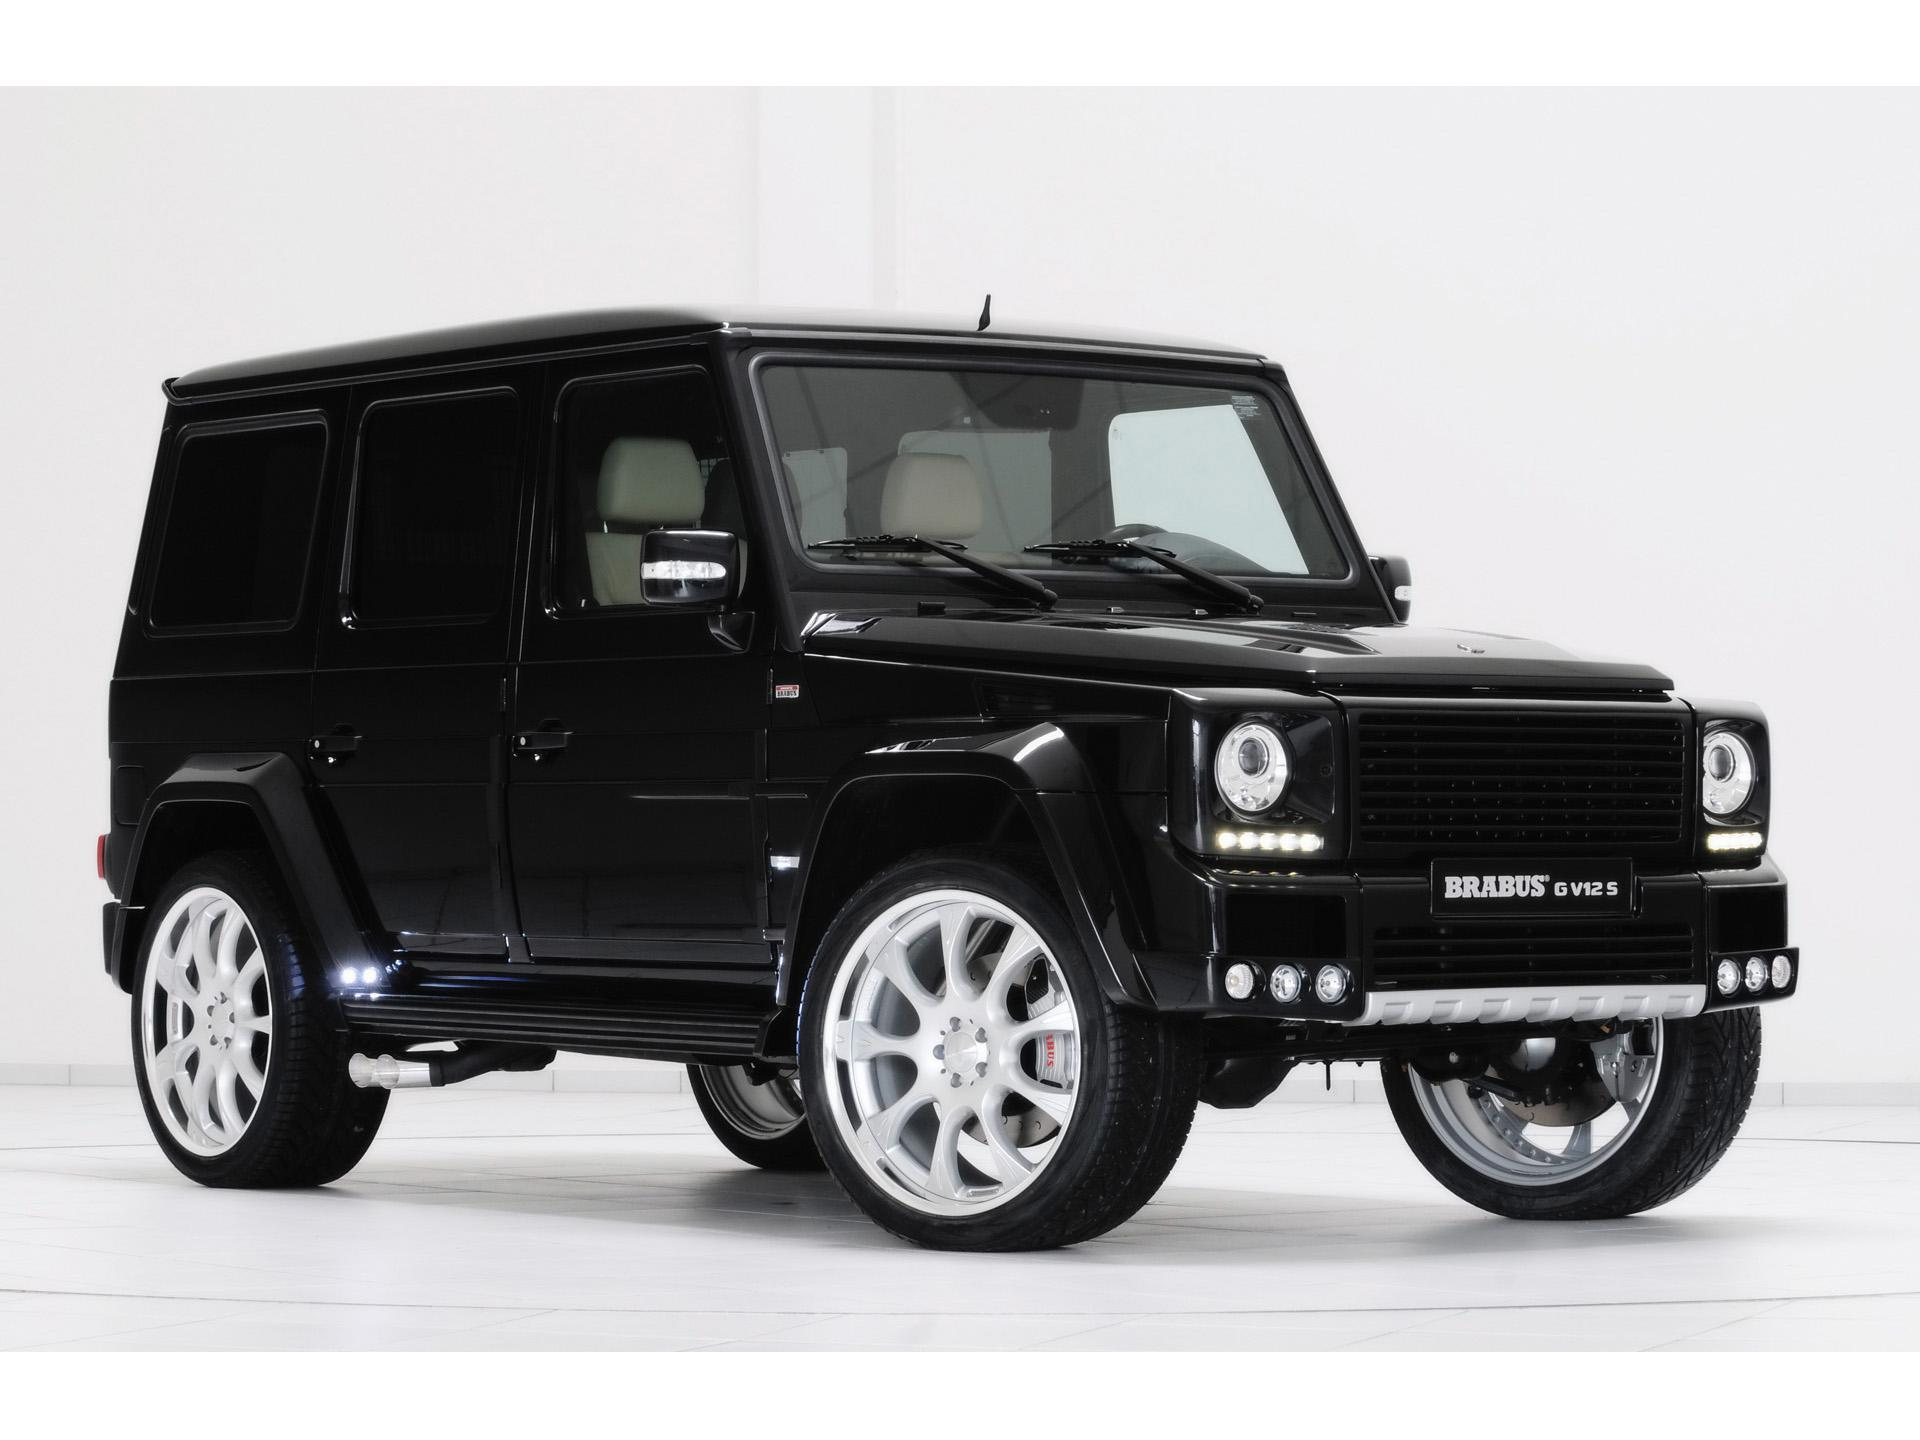 2010 brabus g class v12 s news and information for Mercedes benz v12 price